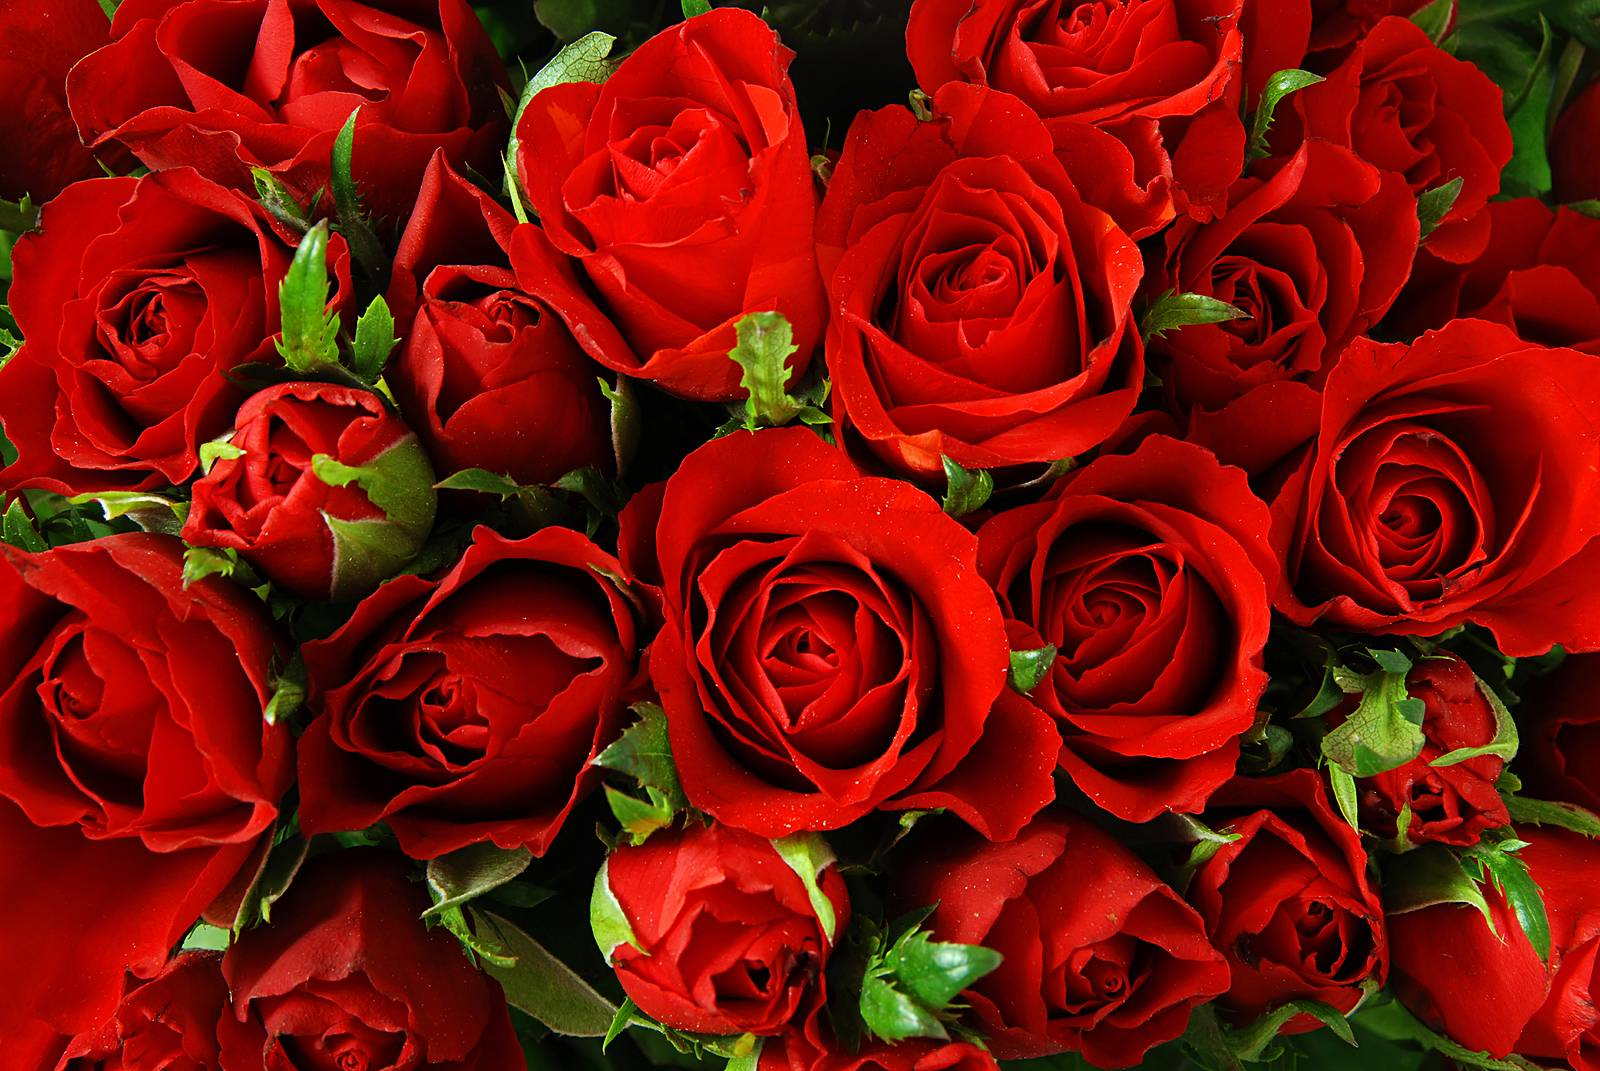 Roses Backgrounds Image - Wallpaper Cave